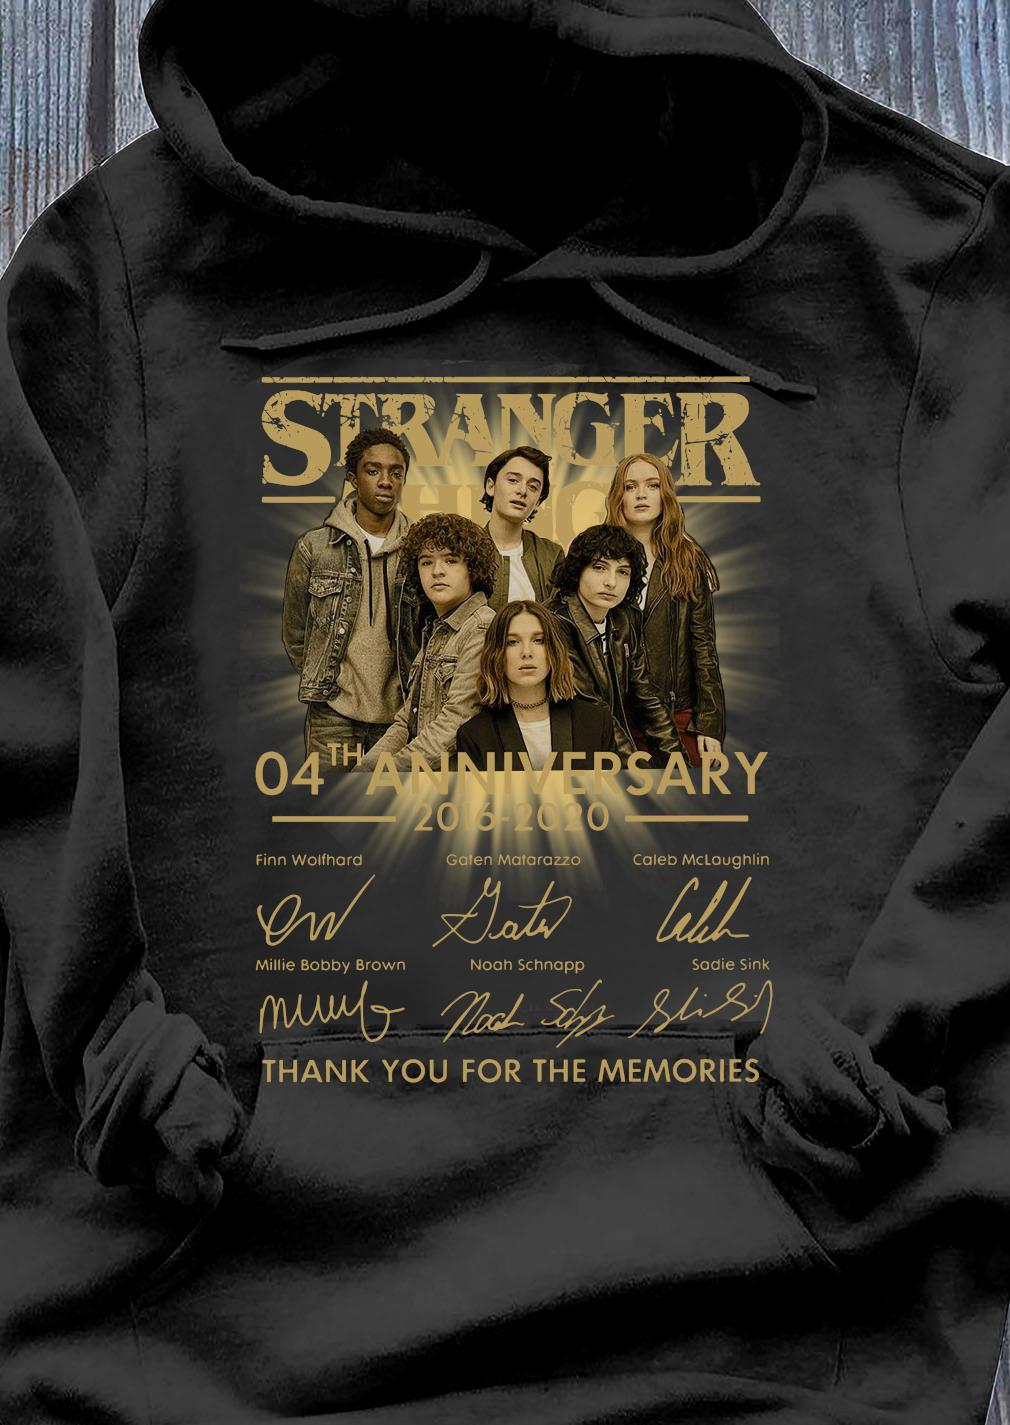 Stranger Things 04th Anniversary 2016-2020 Signatures Thank You For The Memories Shirt Hoodie